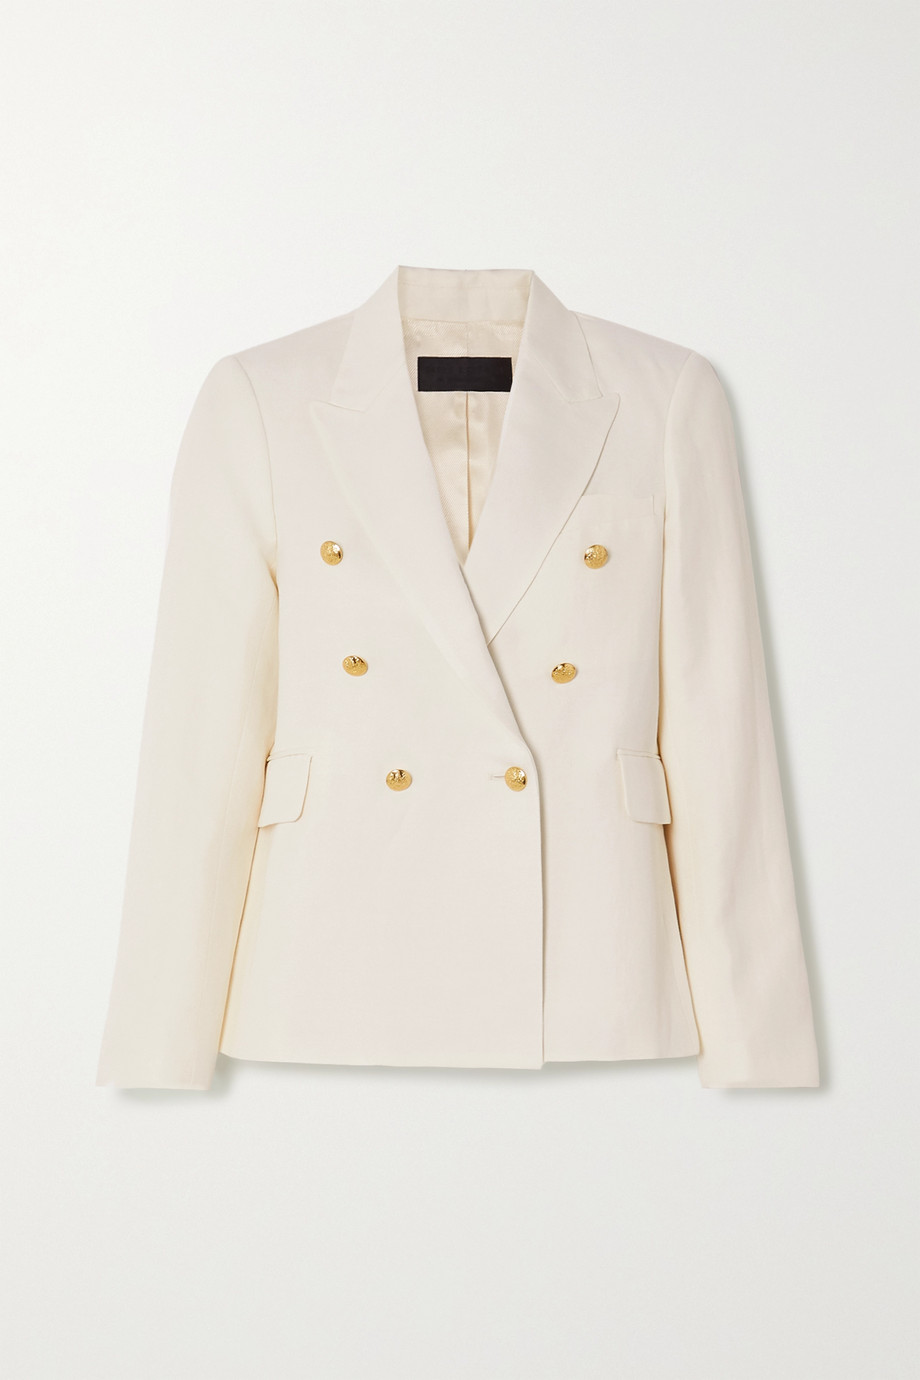 Nili Lotan Henry double-breasted linen and silk-blend blazer